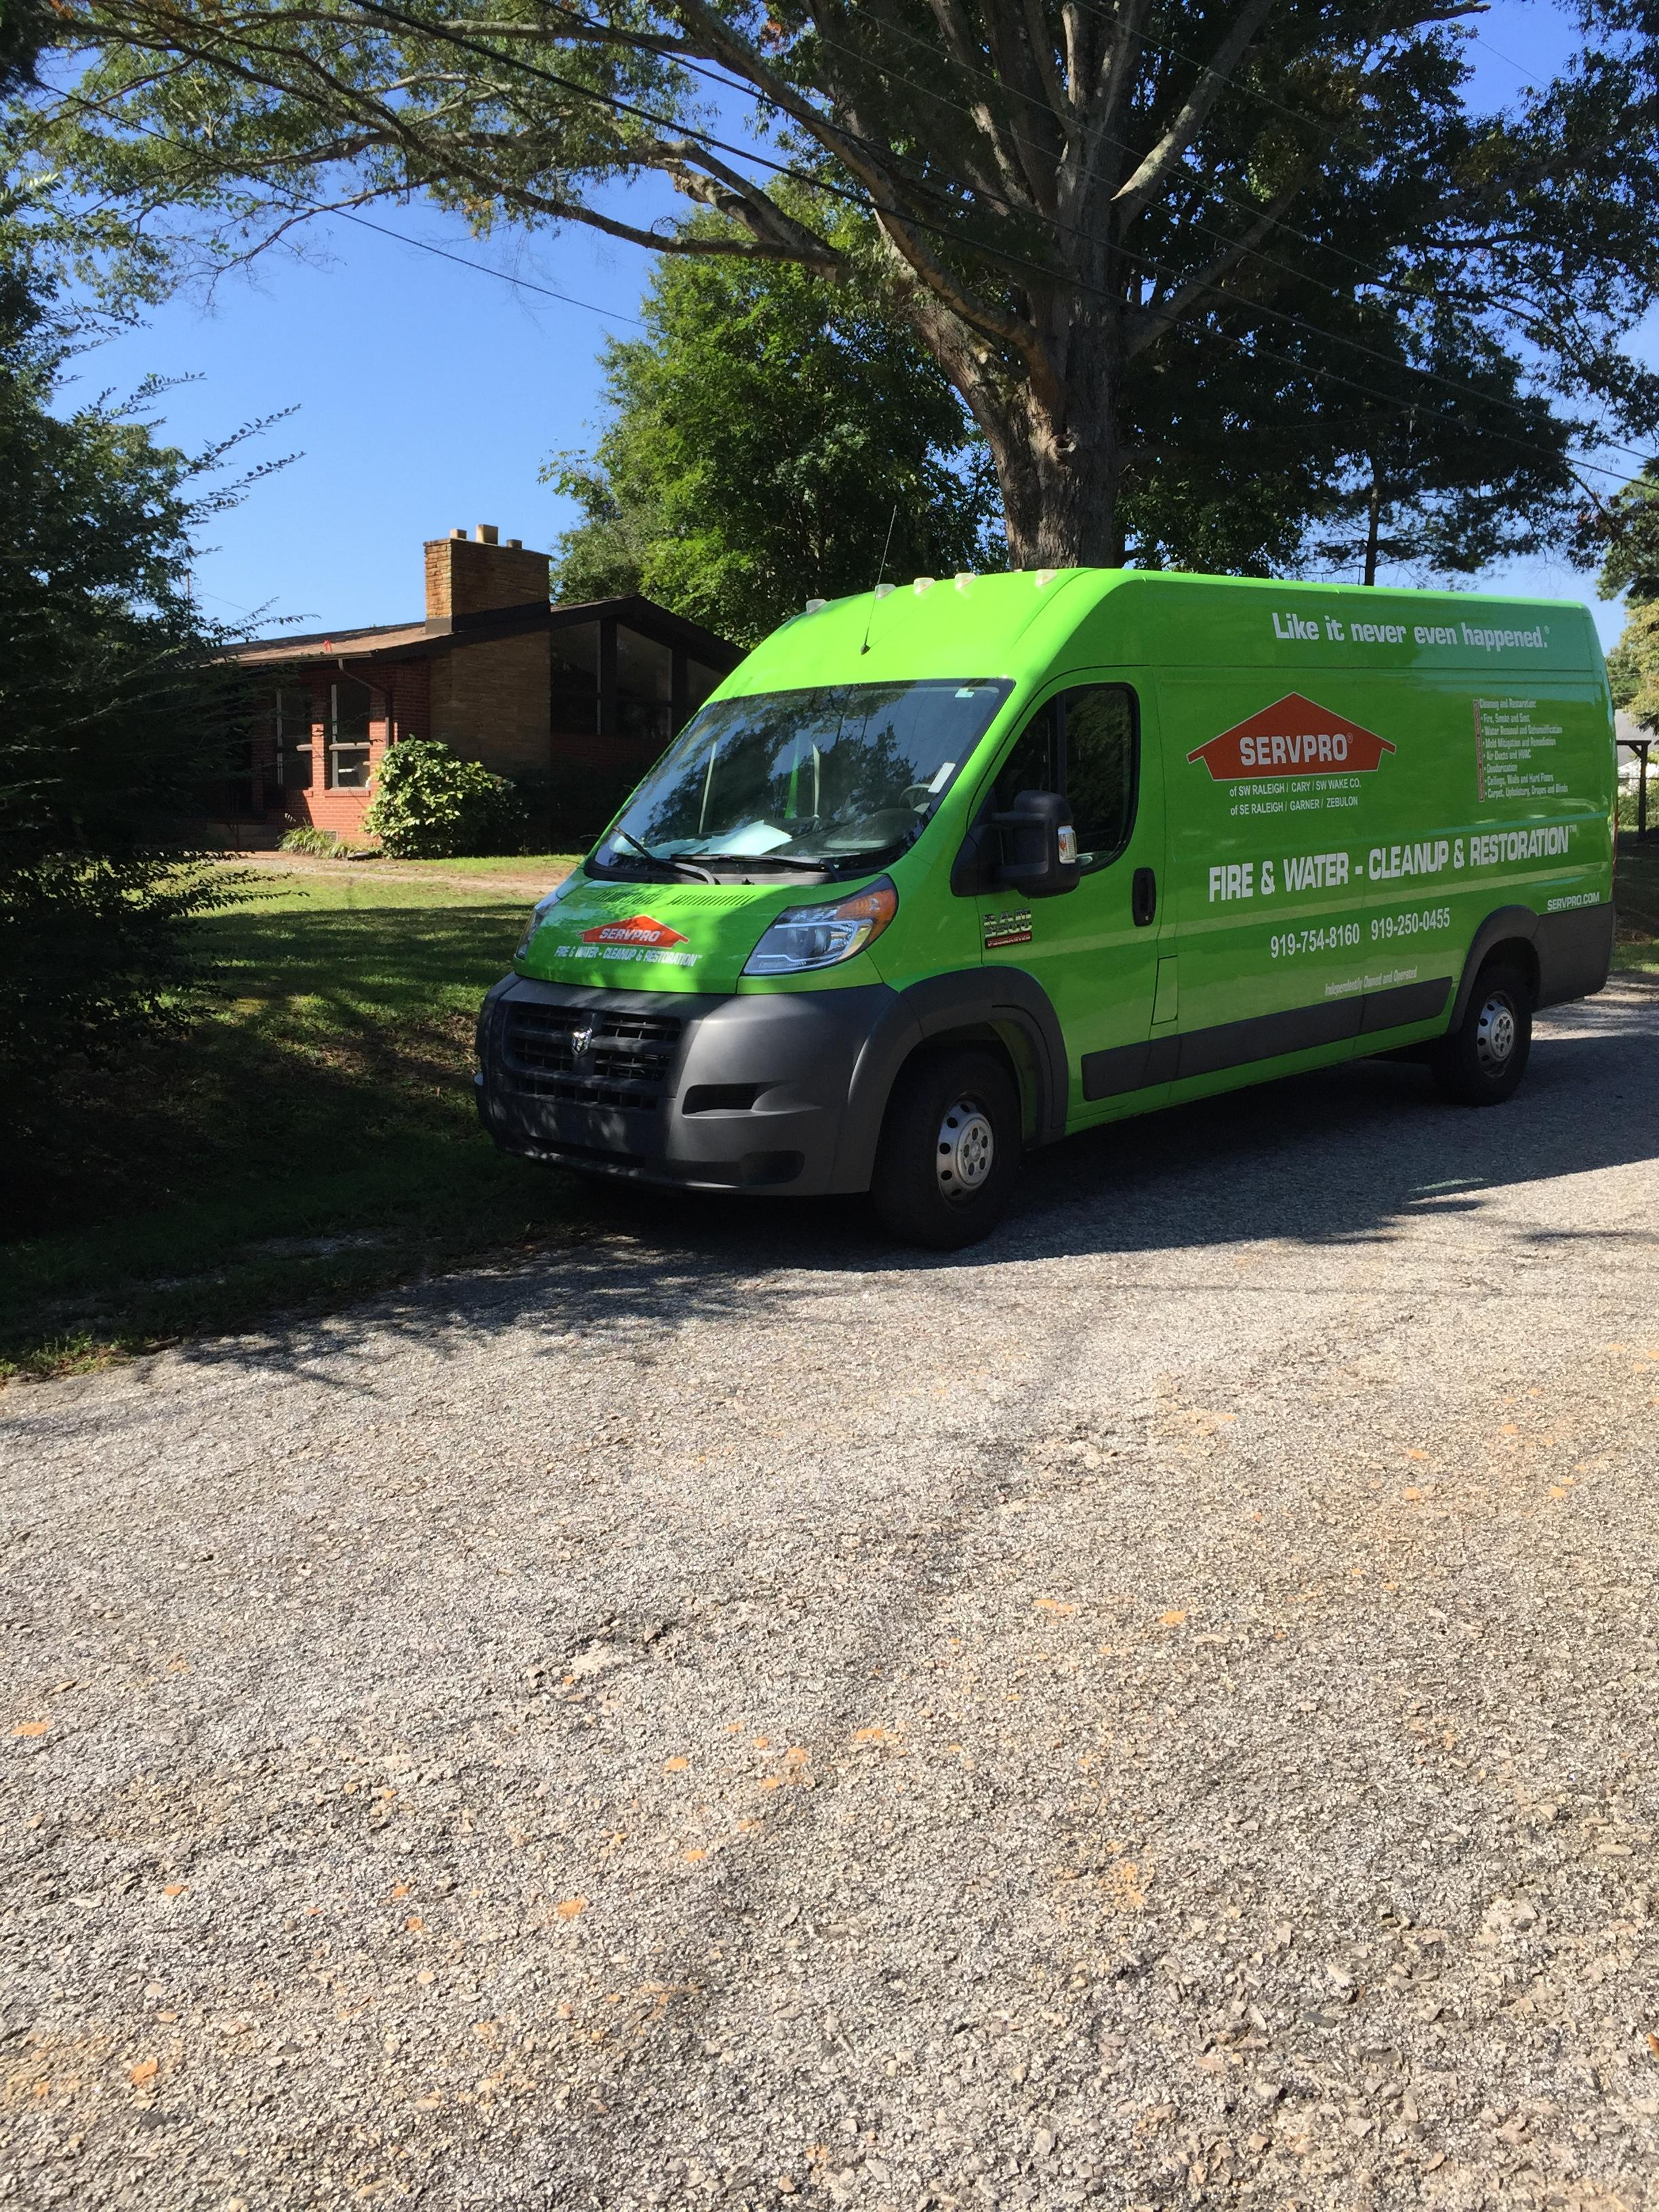 SERVPRO of East Raleigh/Zebulon image 21